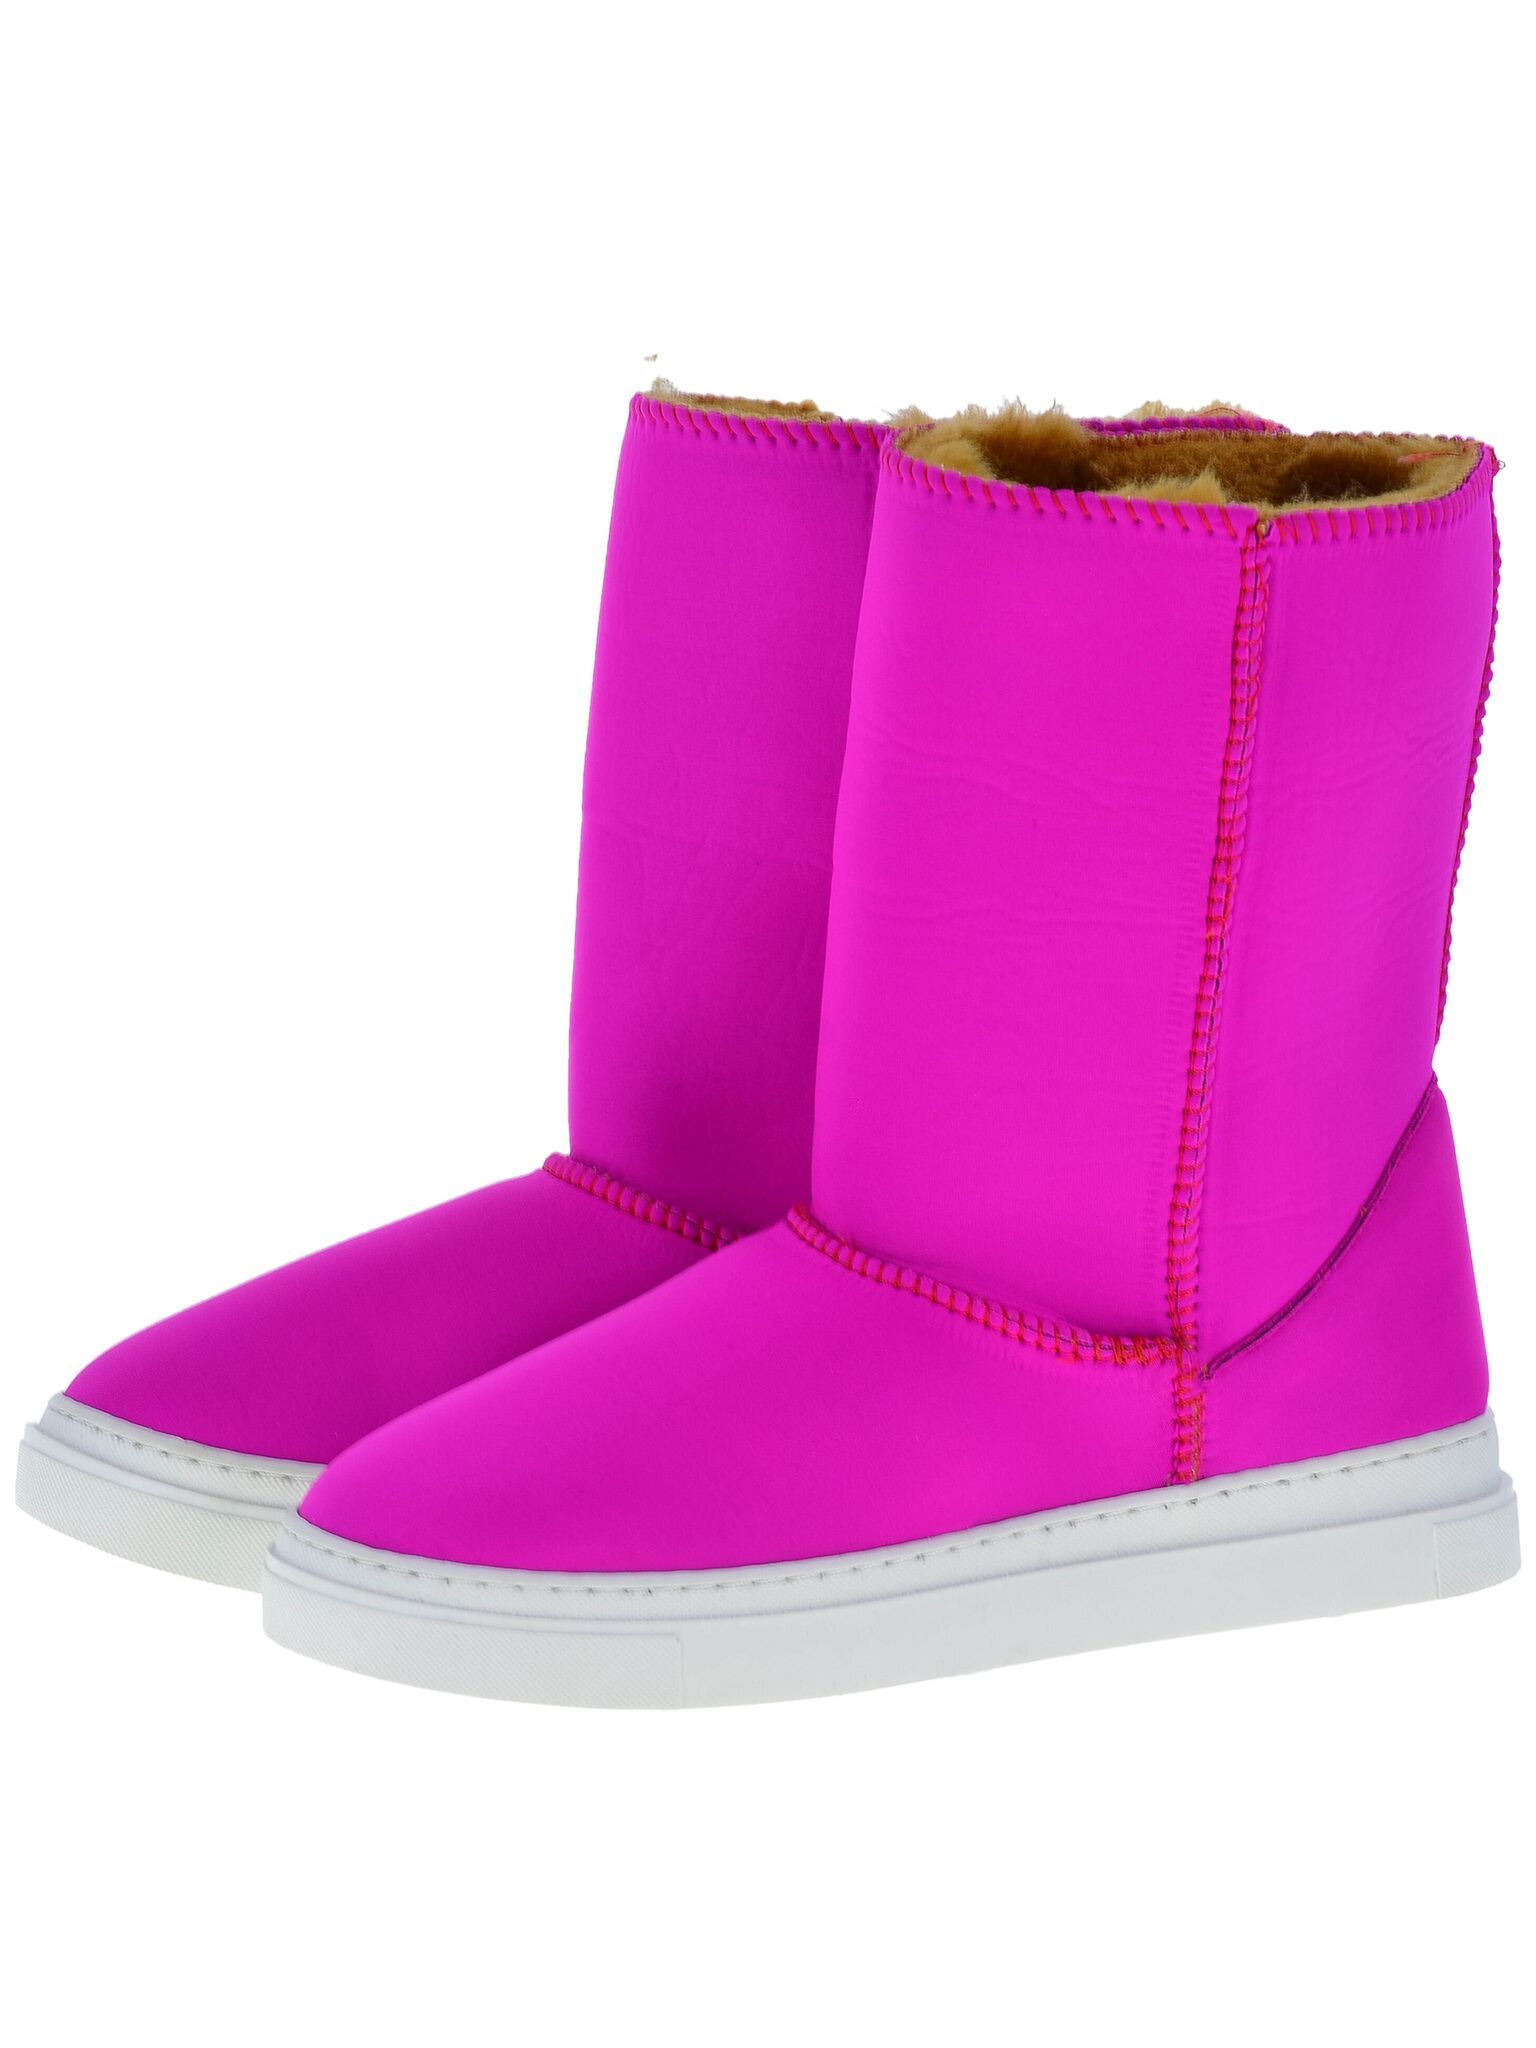 Everest Air Neo-Fuchsia Adele boots. Scuba Neoprene Fabric, faux-fur lining, warm and comfort guaranteed.